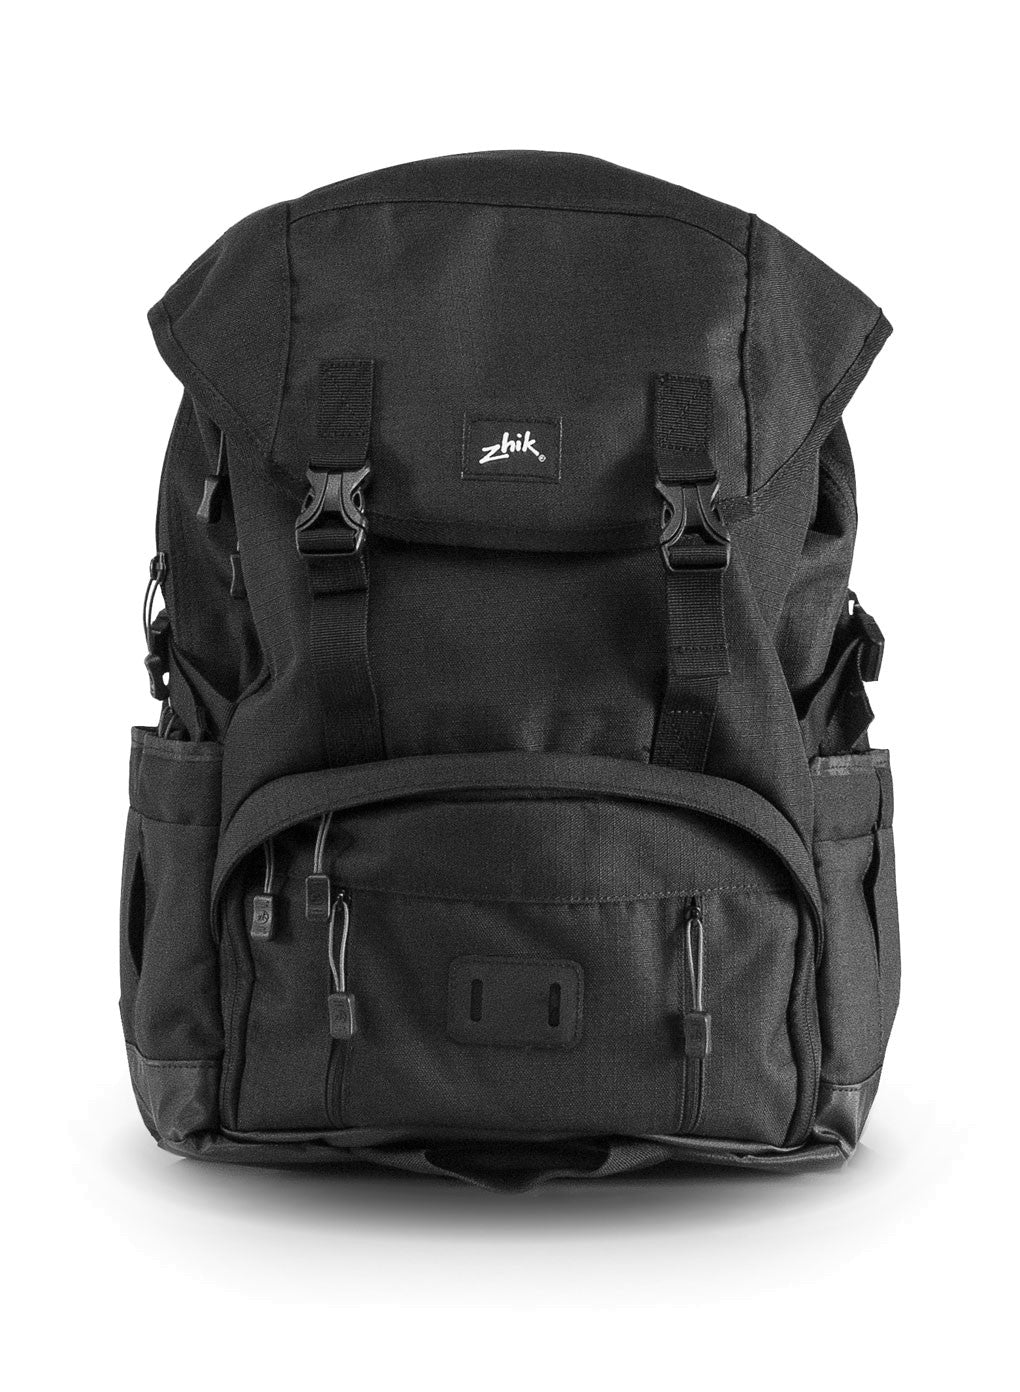 Zhik Backpack 27L